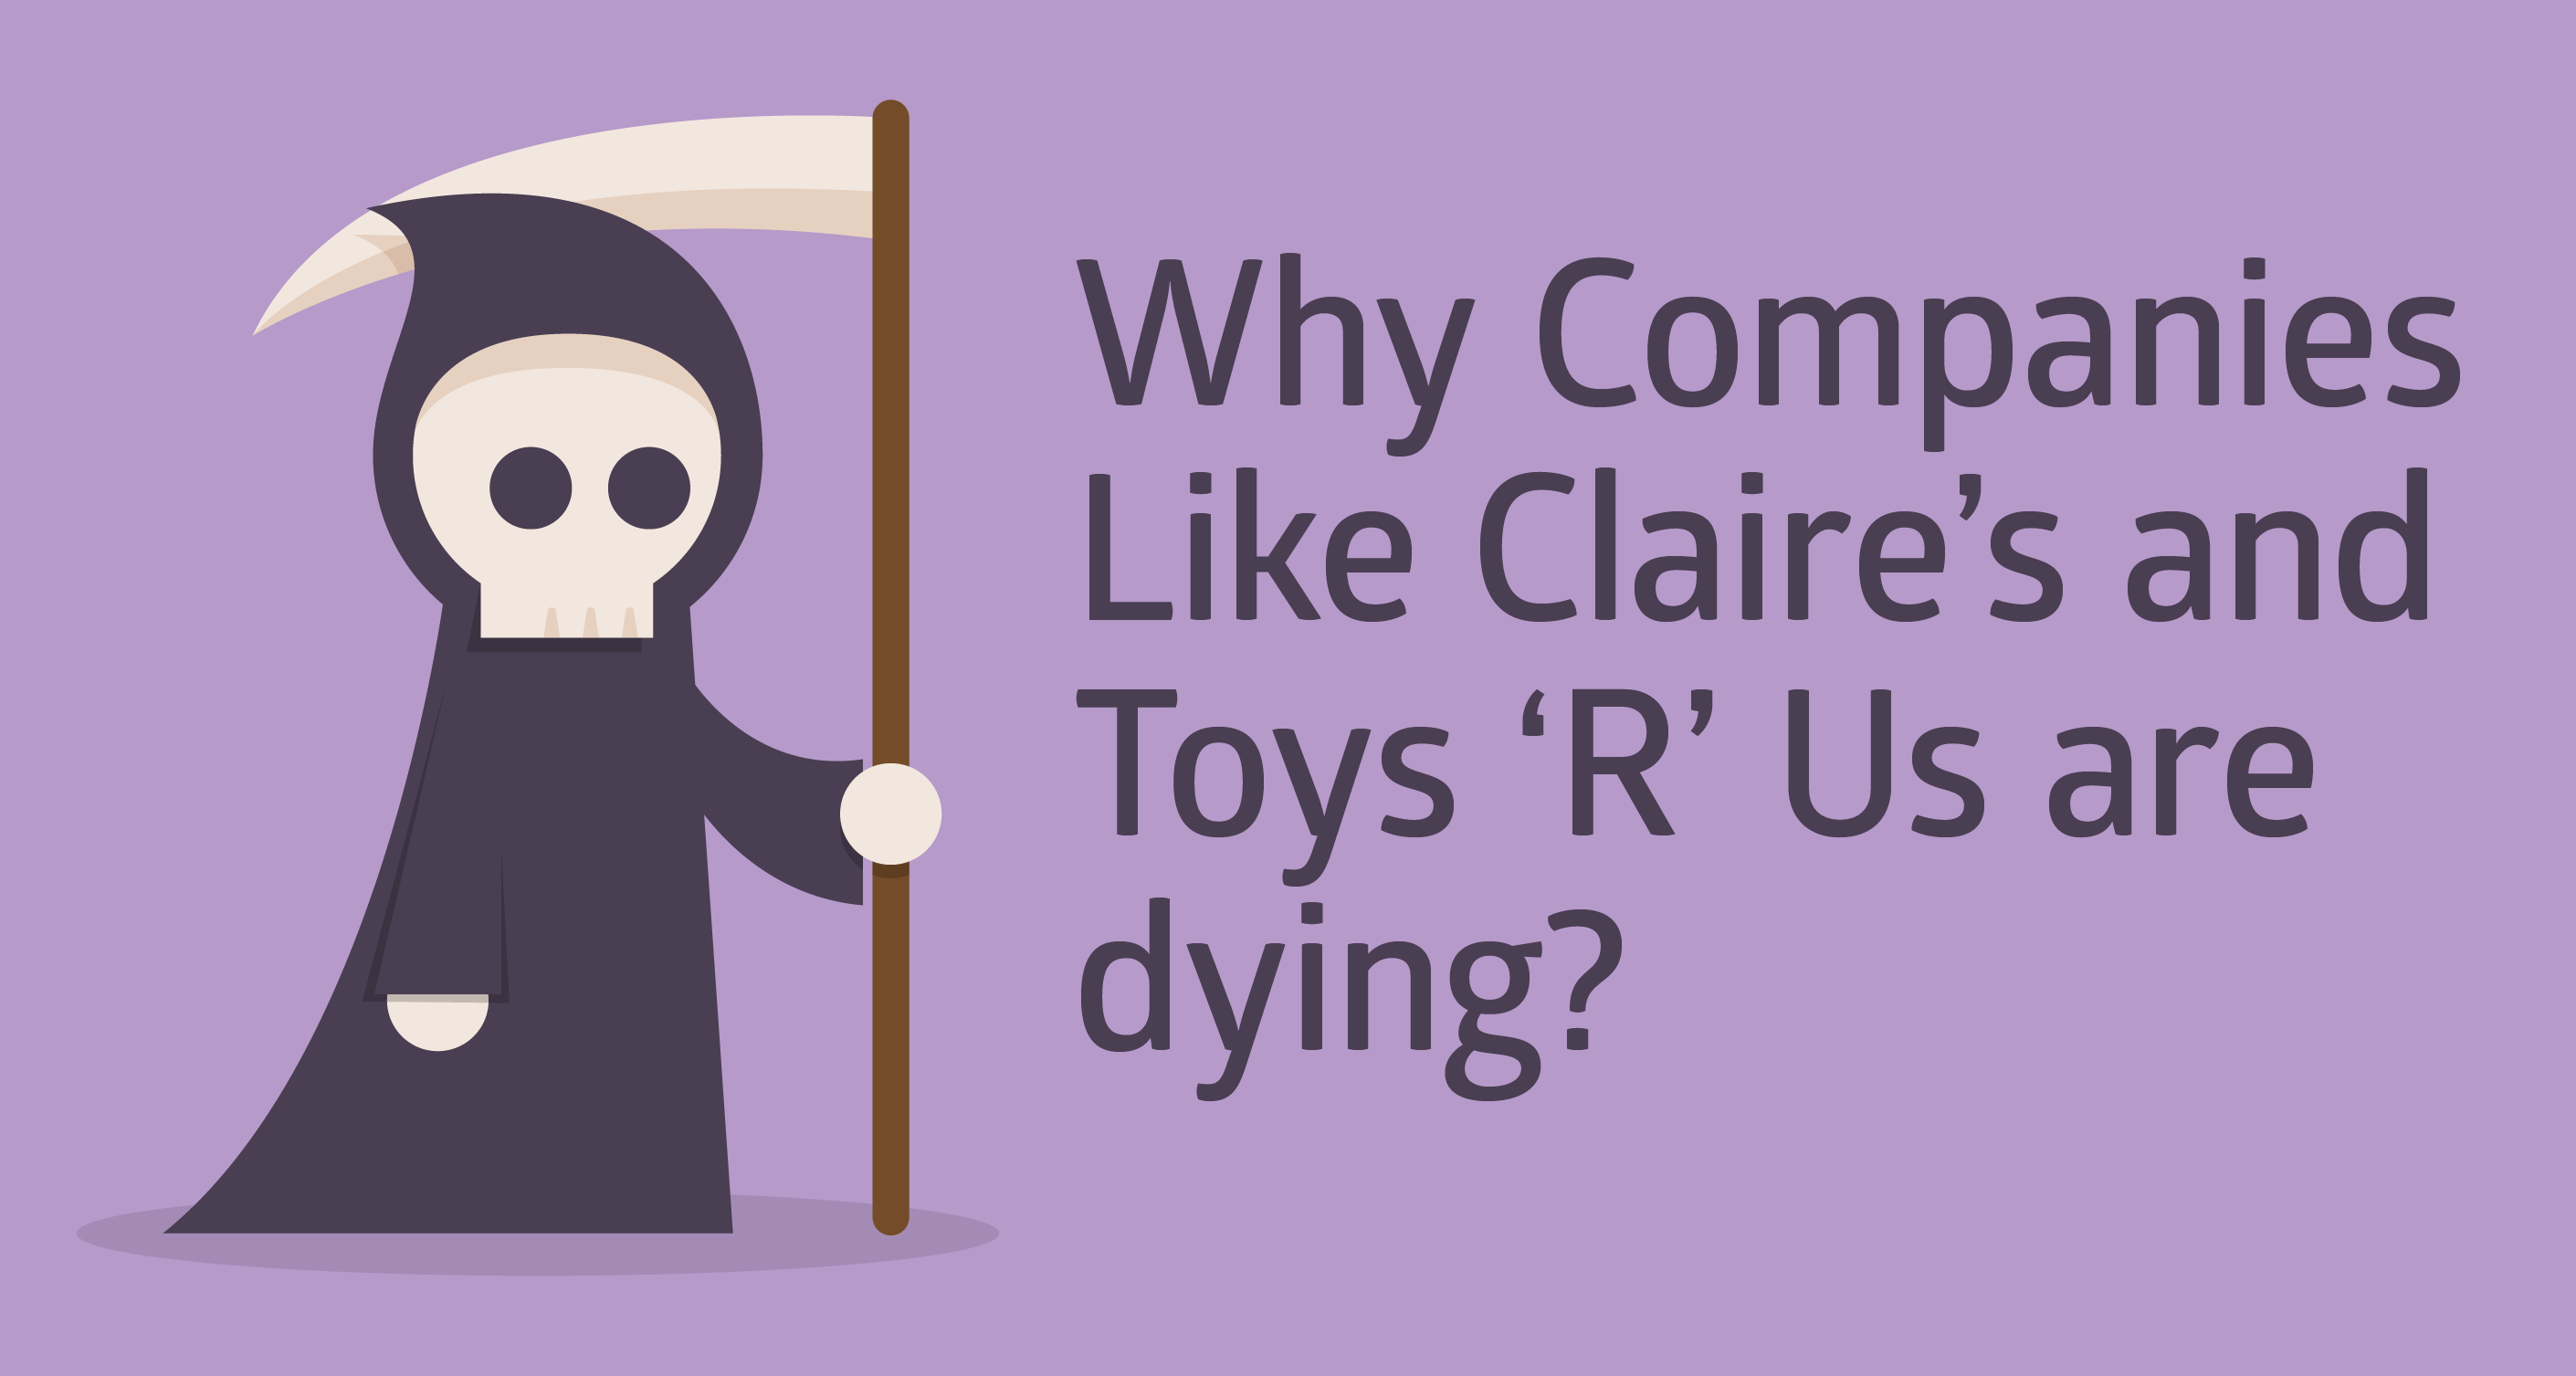 Idea Theorem - Why Companies Like Claire's and Toys 'R' Us are dying?